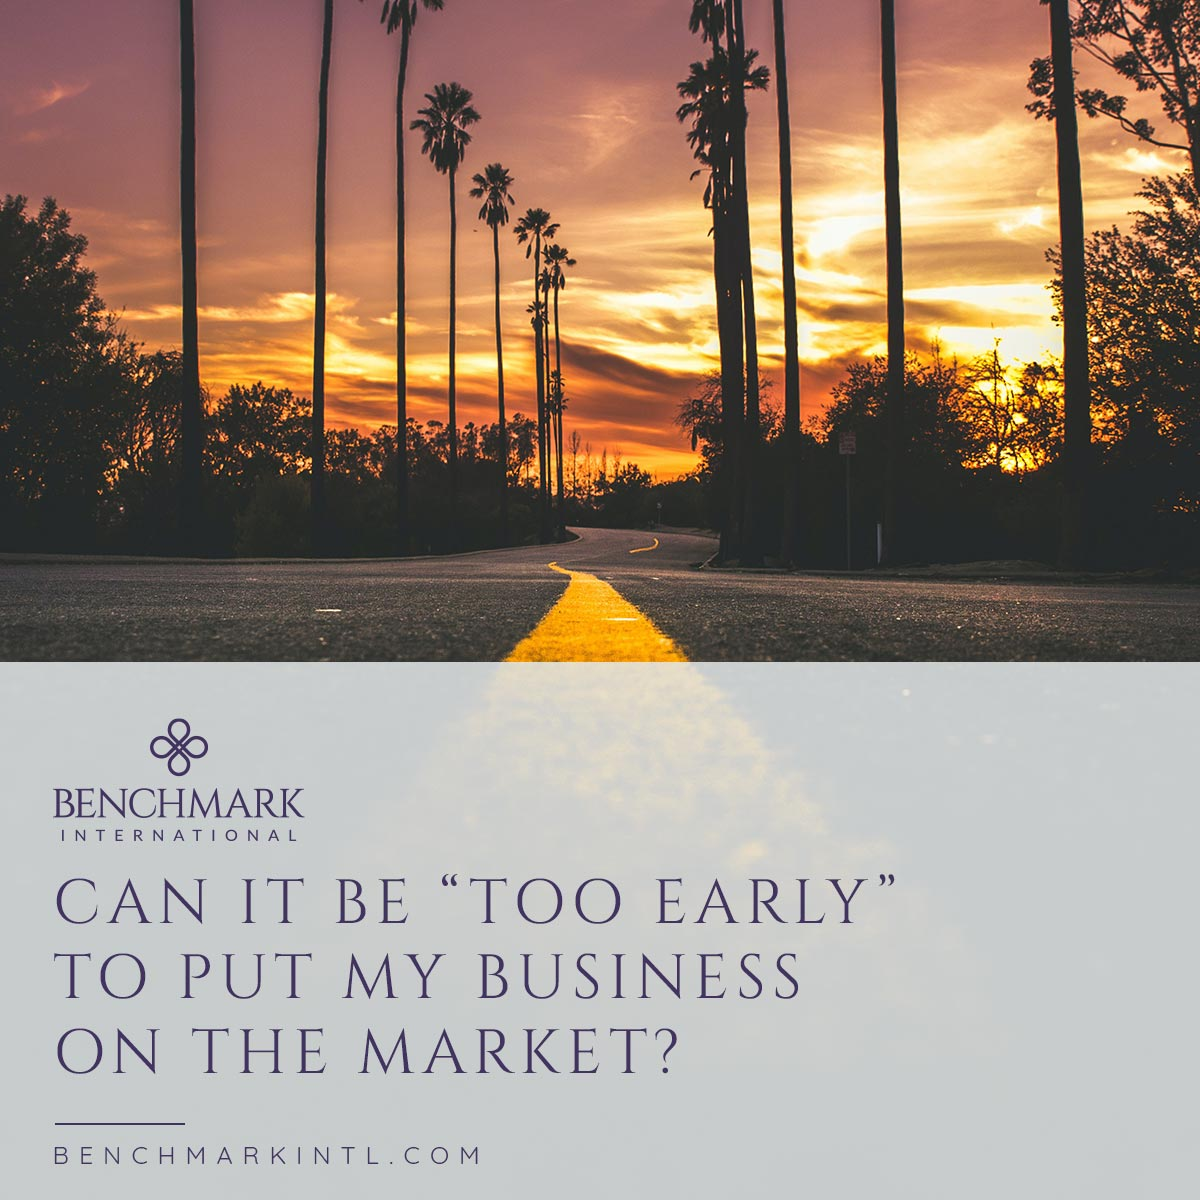 Can_It_Be_Too_Early_To_Put_My_Business_On_The_Market_Social